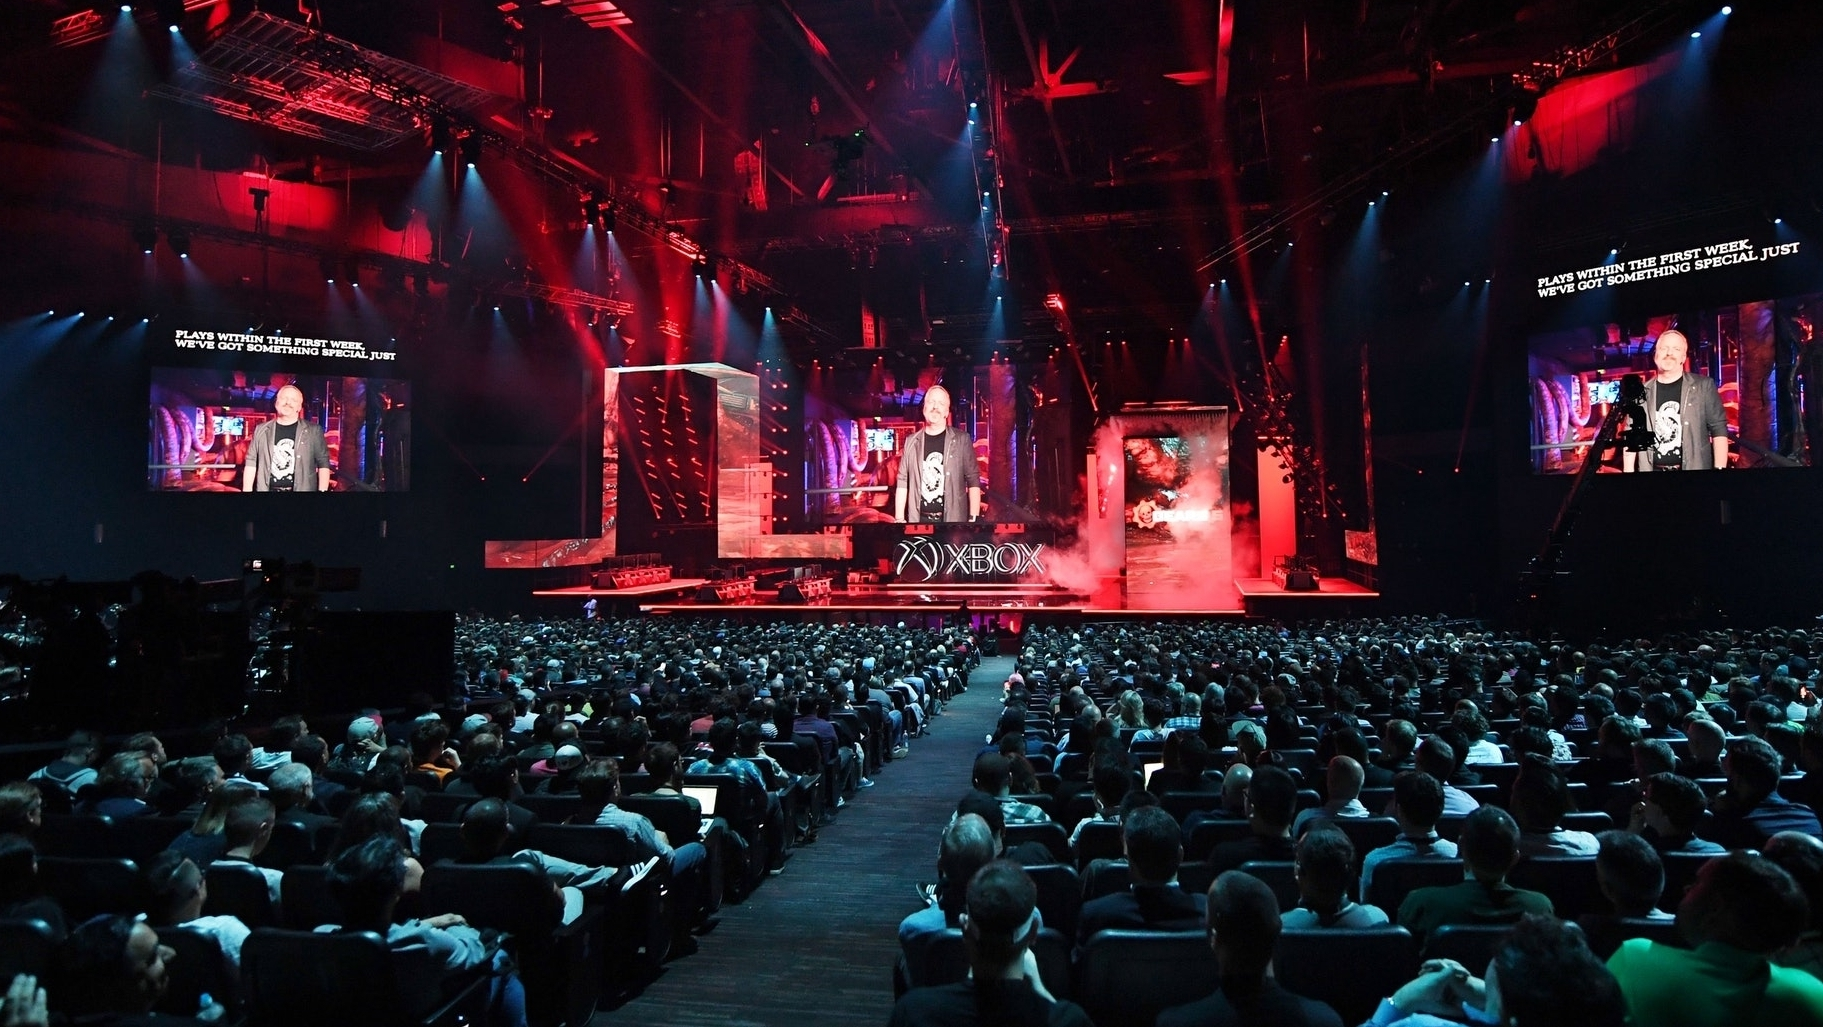 E3 2021: Did Publishers Stop Selling Dreams, or Did Users Stop Dreaming? - editorial